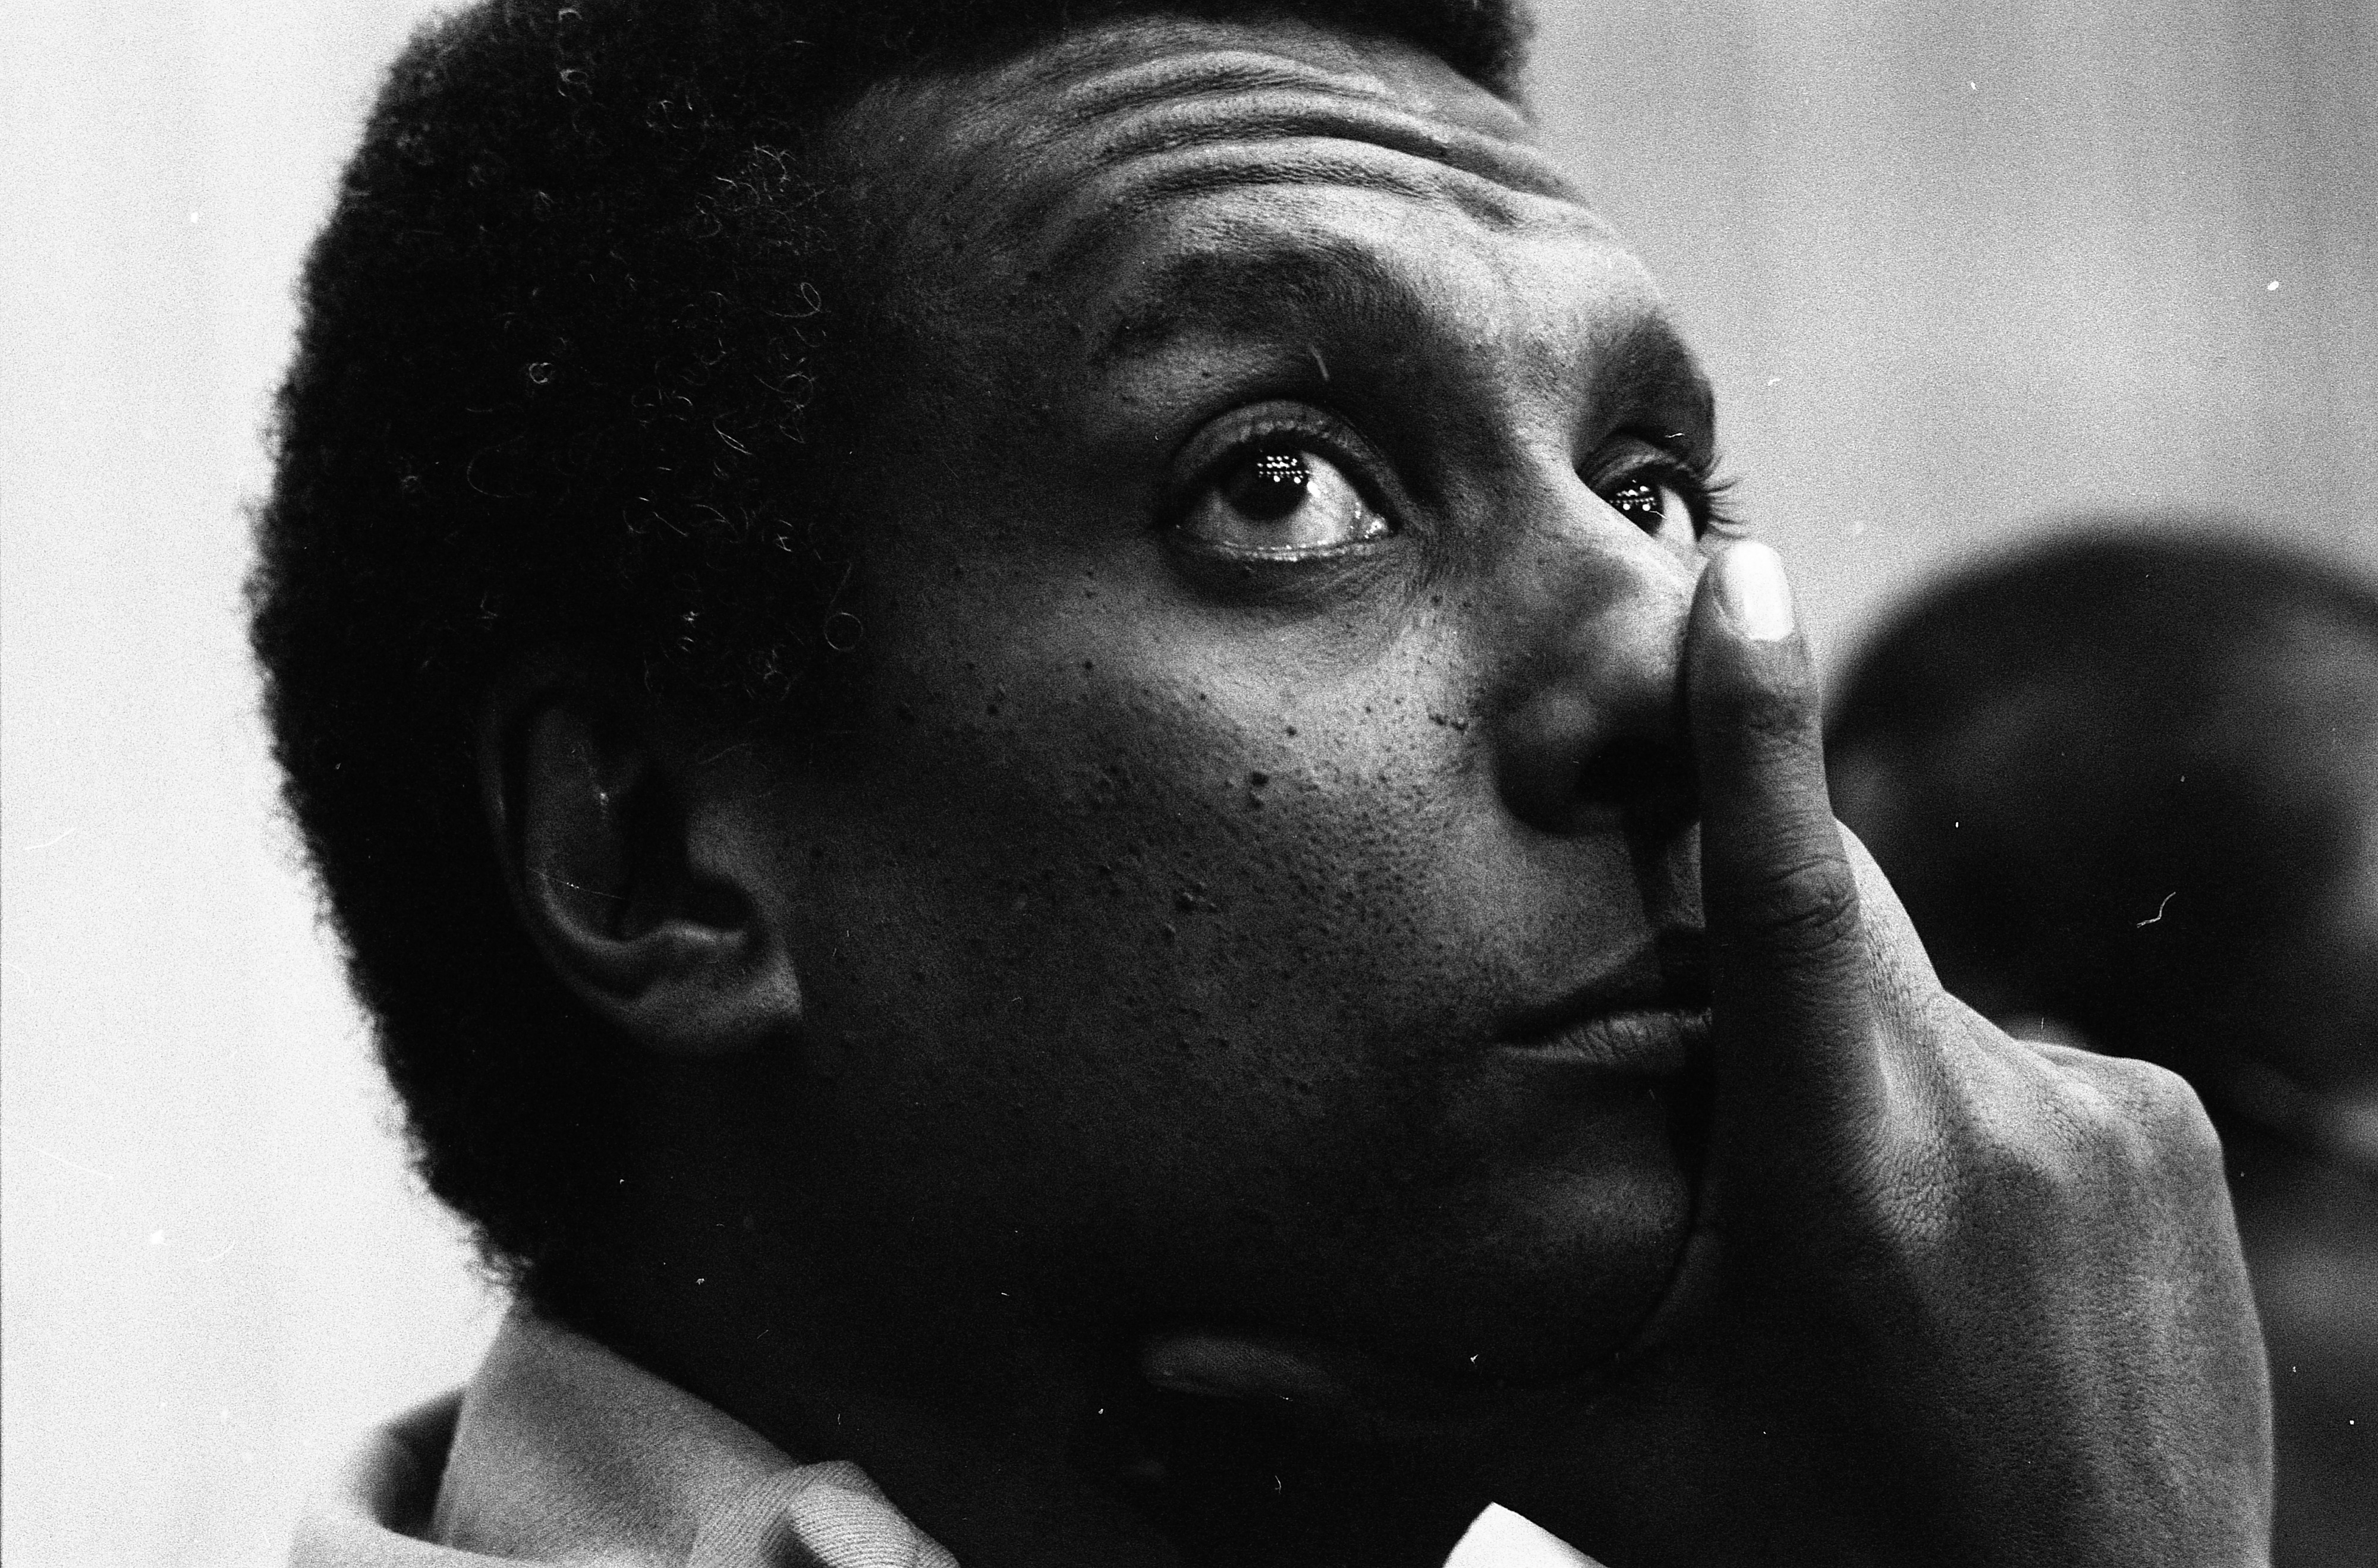 Stokely Carmichael At Hale Auditorium For Conference Honoring Black History Month, February 13, 1983 image